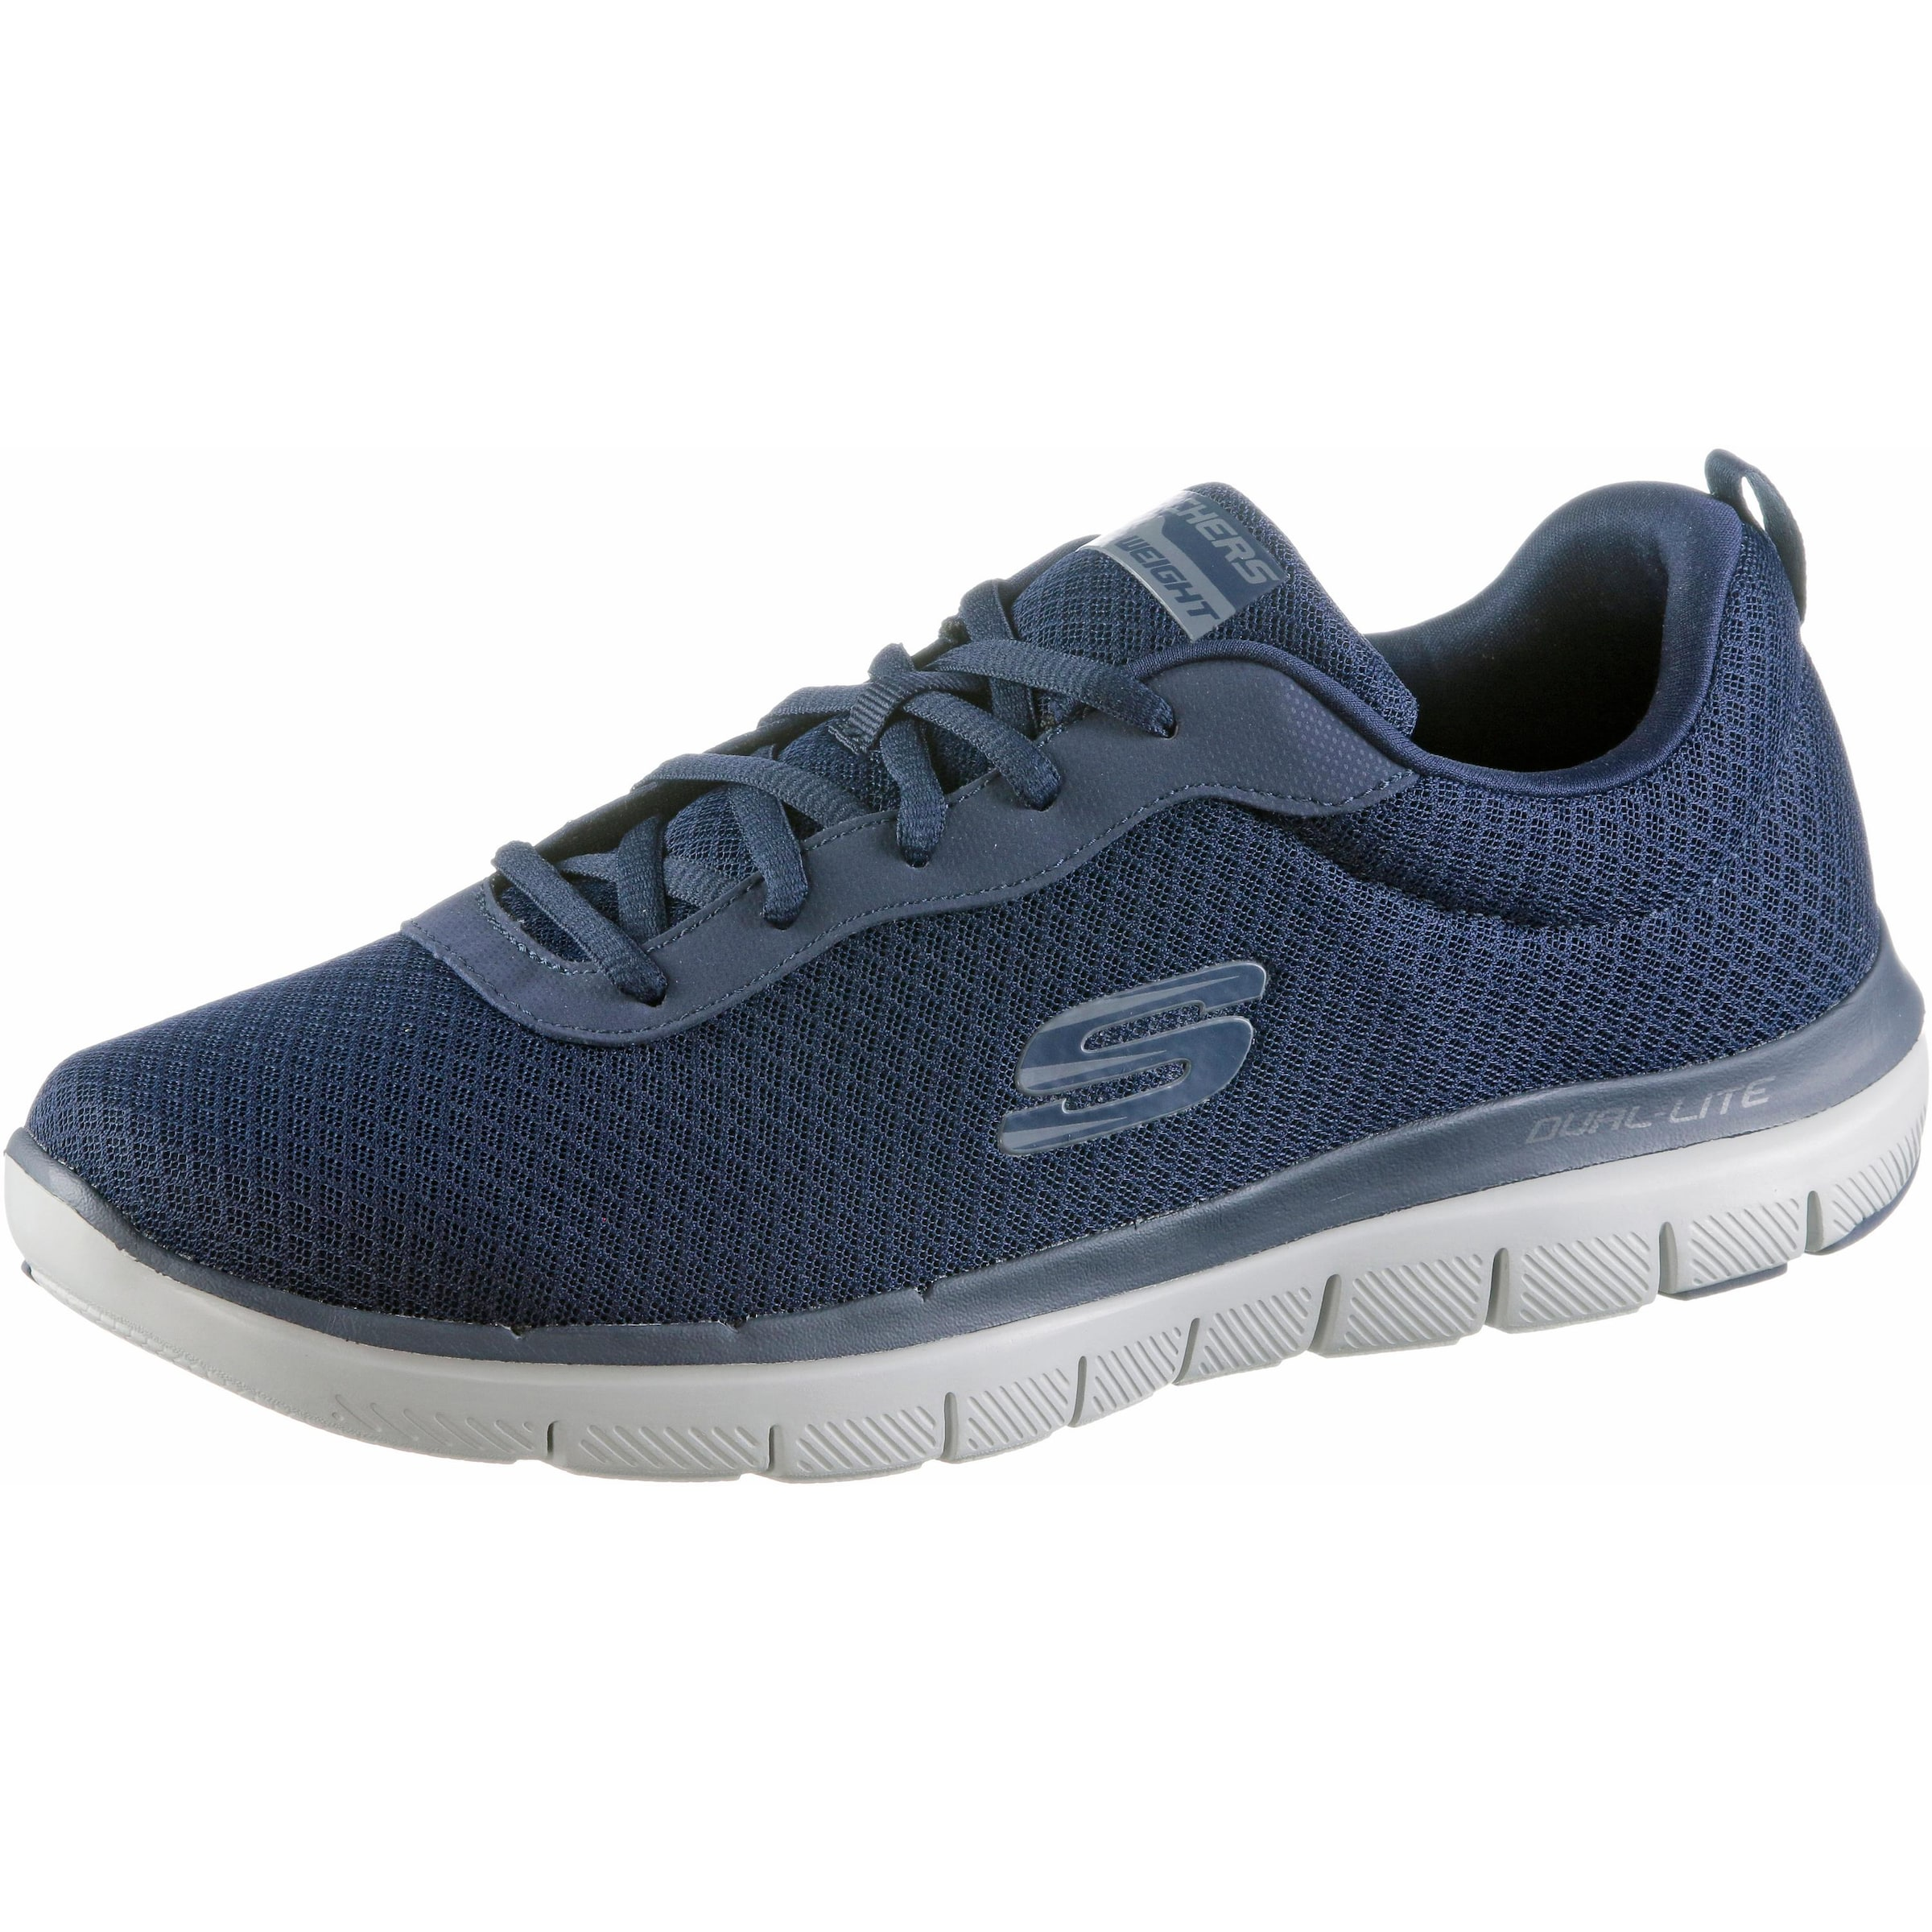 SKECHERS FLEX ADVANTAGE 2.0 Sneaker Herren